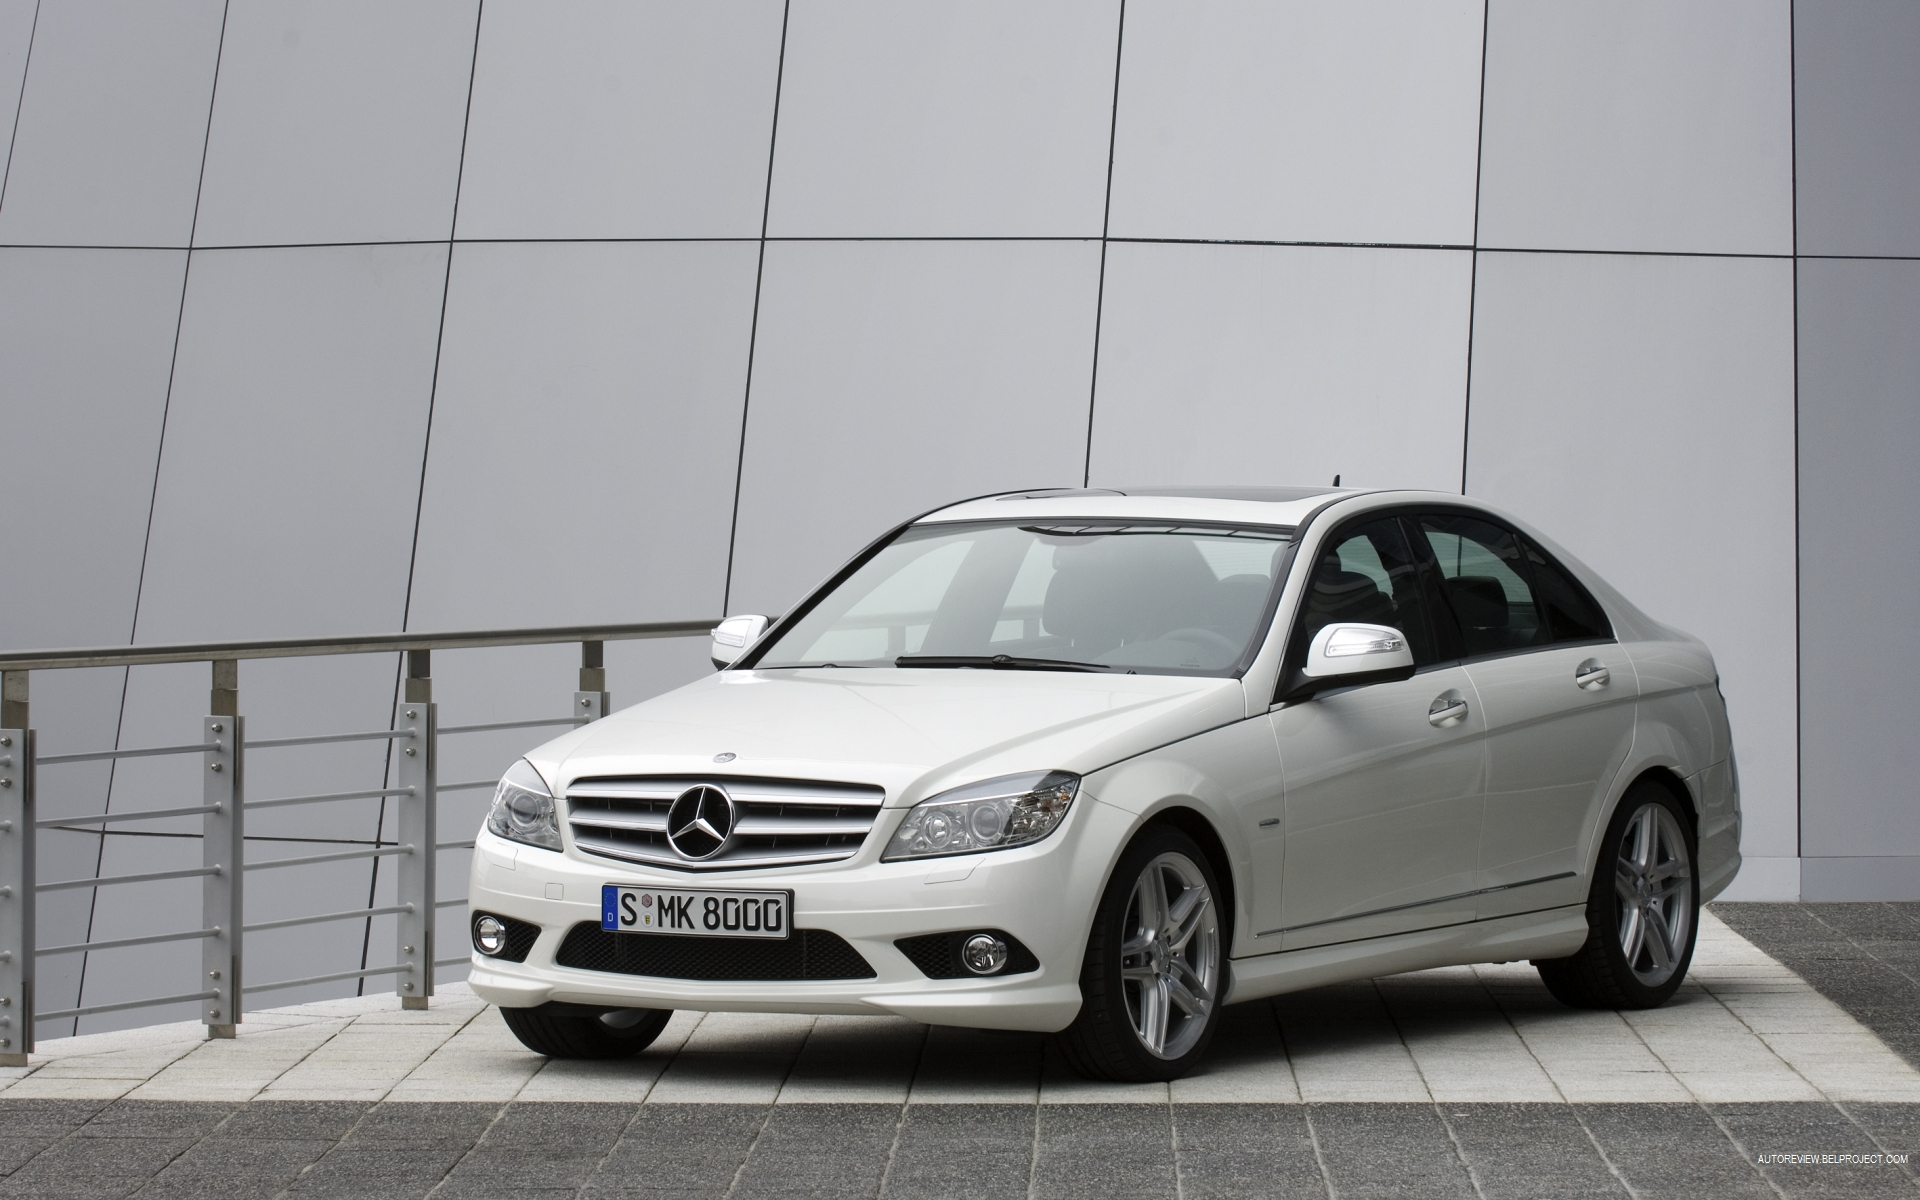 Mercedes-benz C180 2012 photo - 2